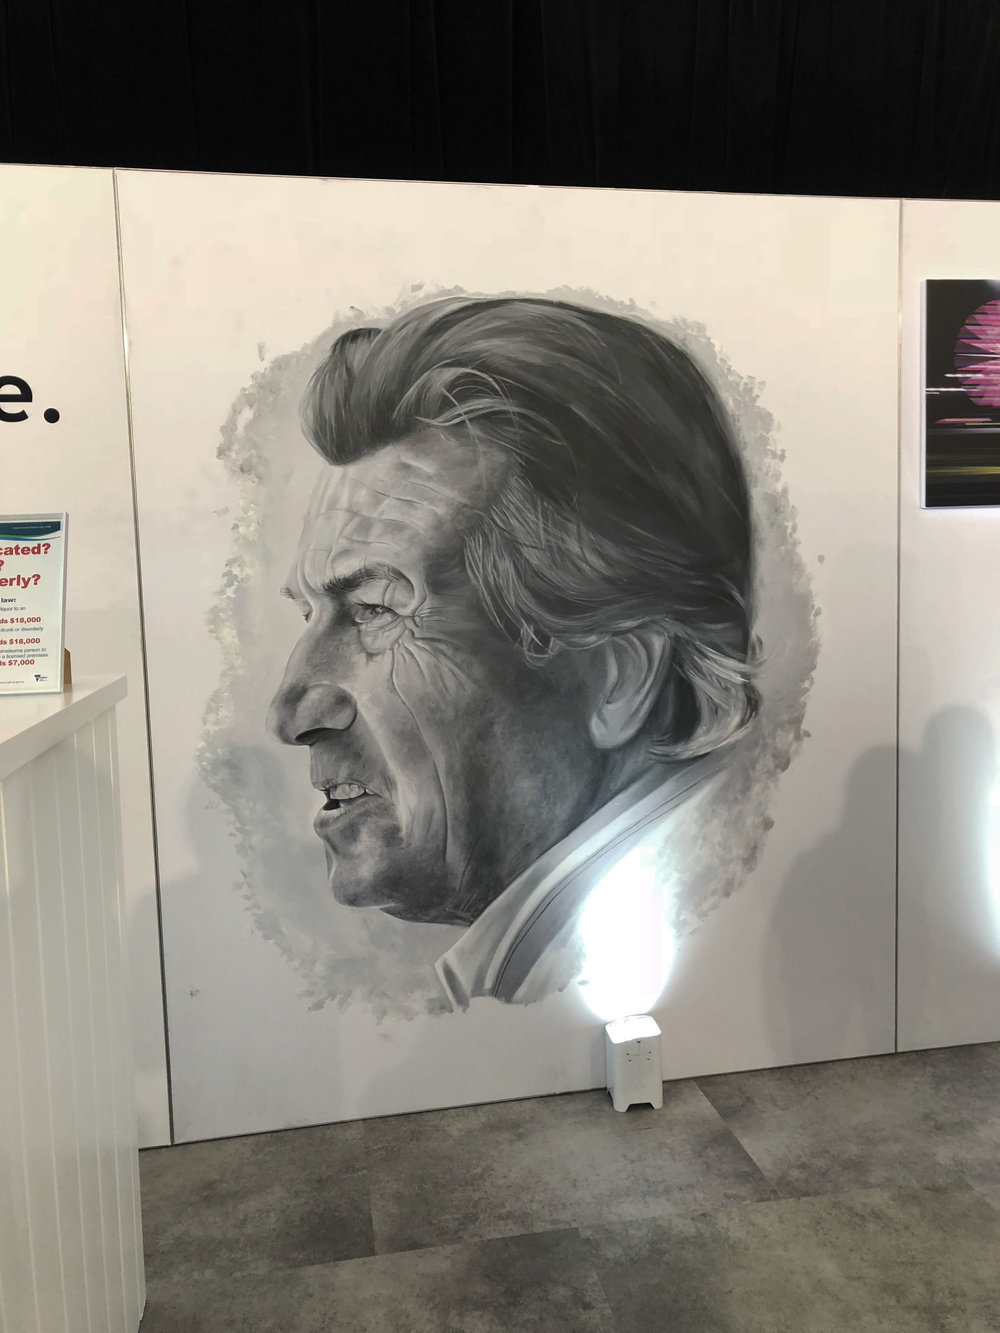 Ferruccio Lamborghini Portrait,  2018, acrylic on fabric panel, 2x3m, Lamborghini Lounge, Australian Grand Prix.